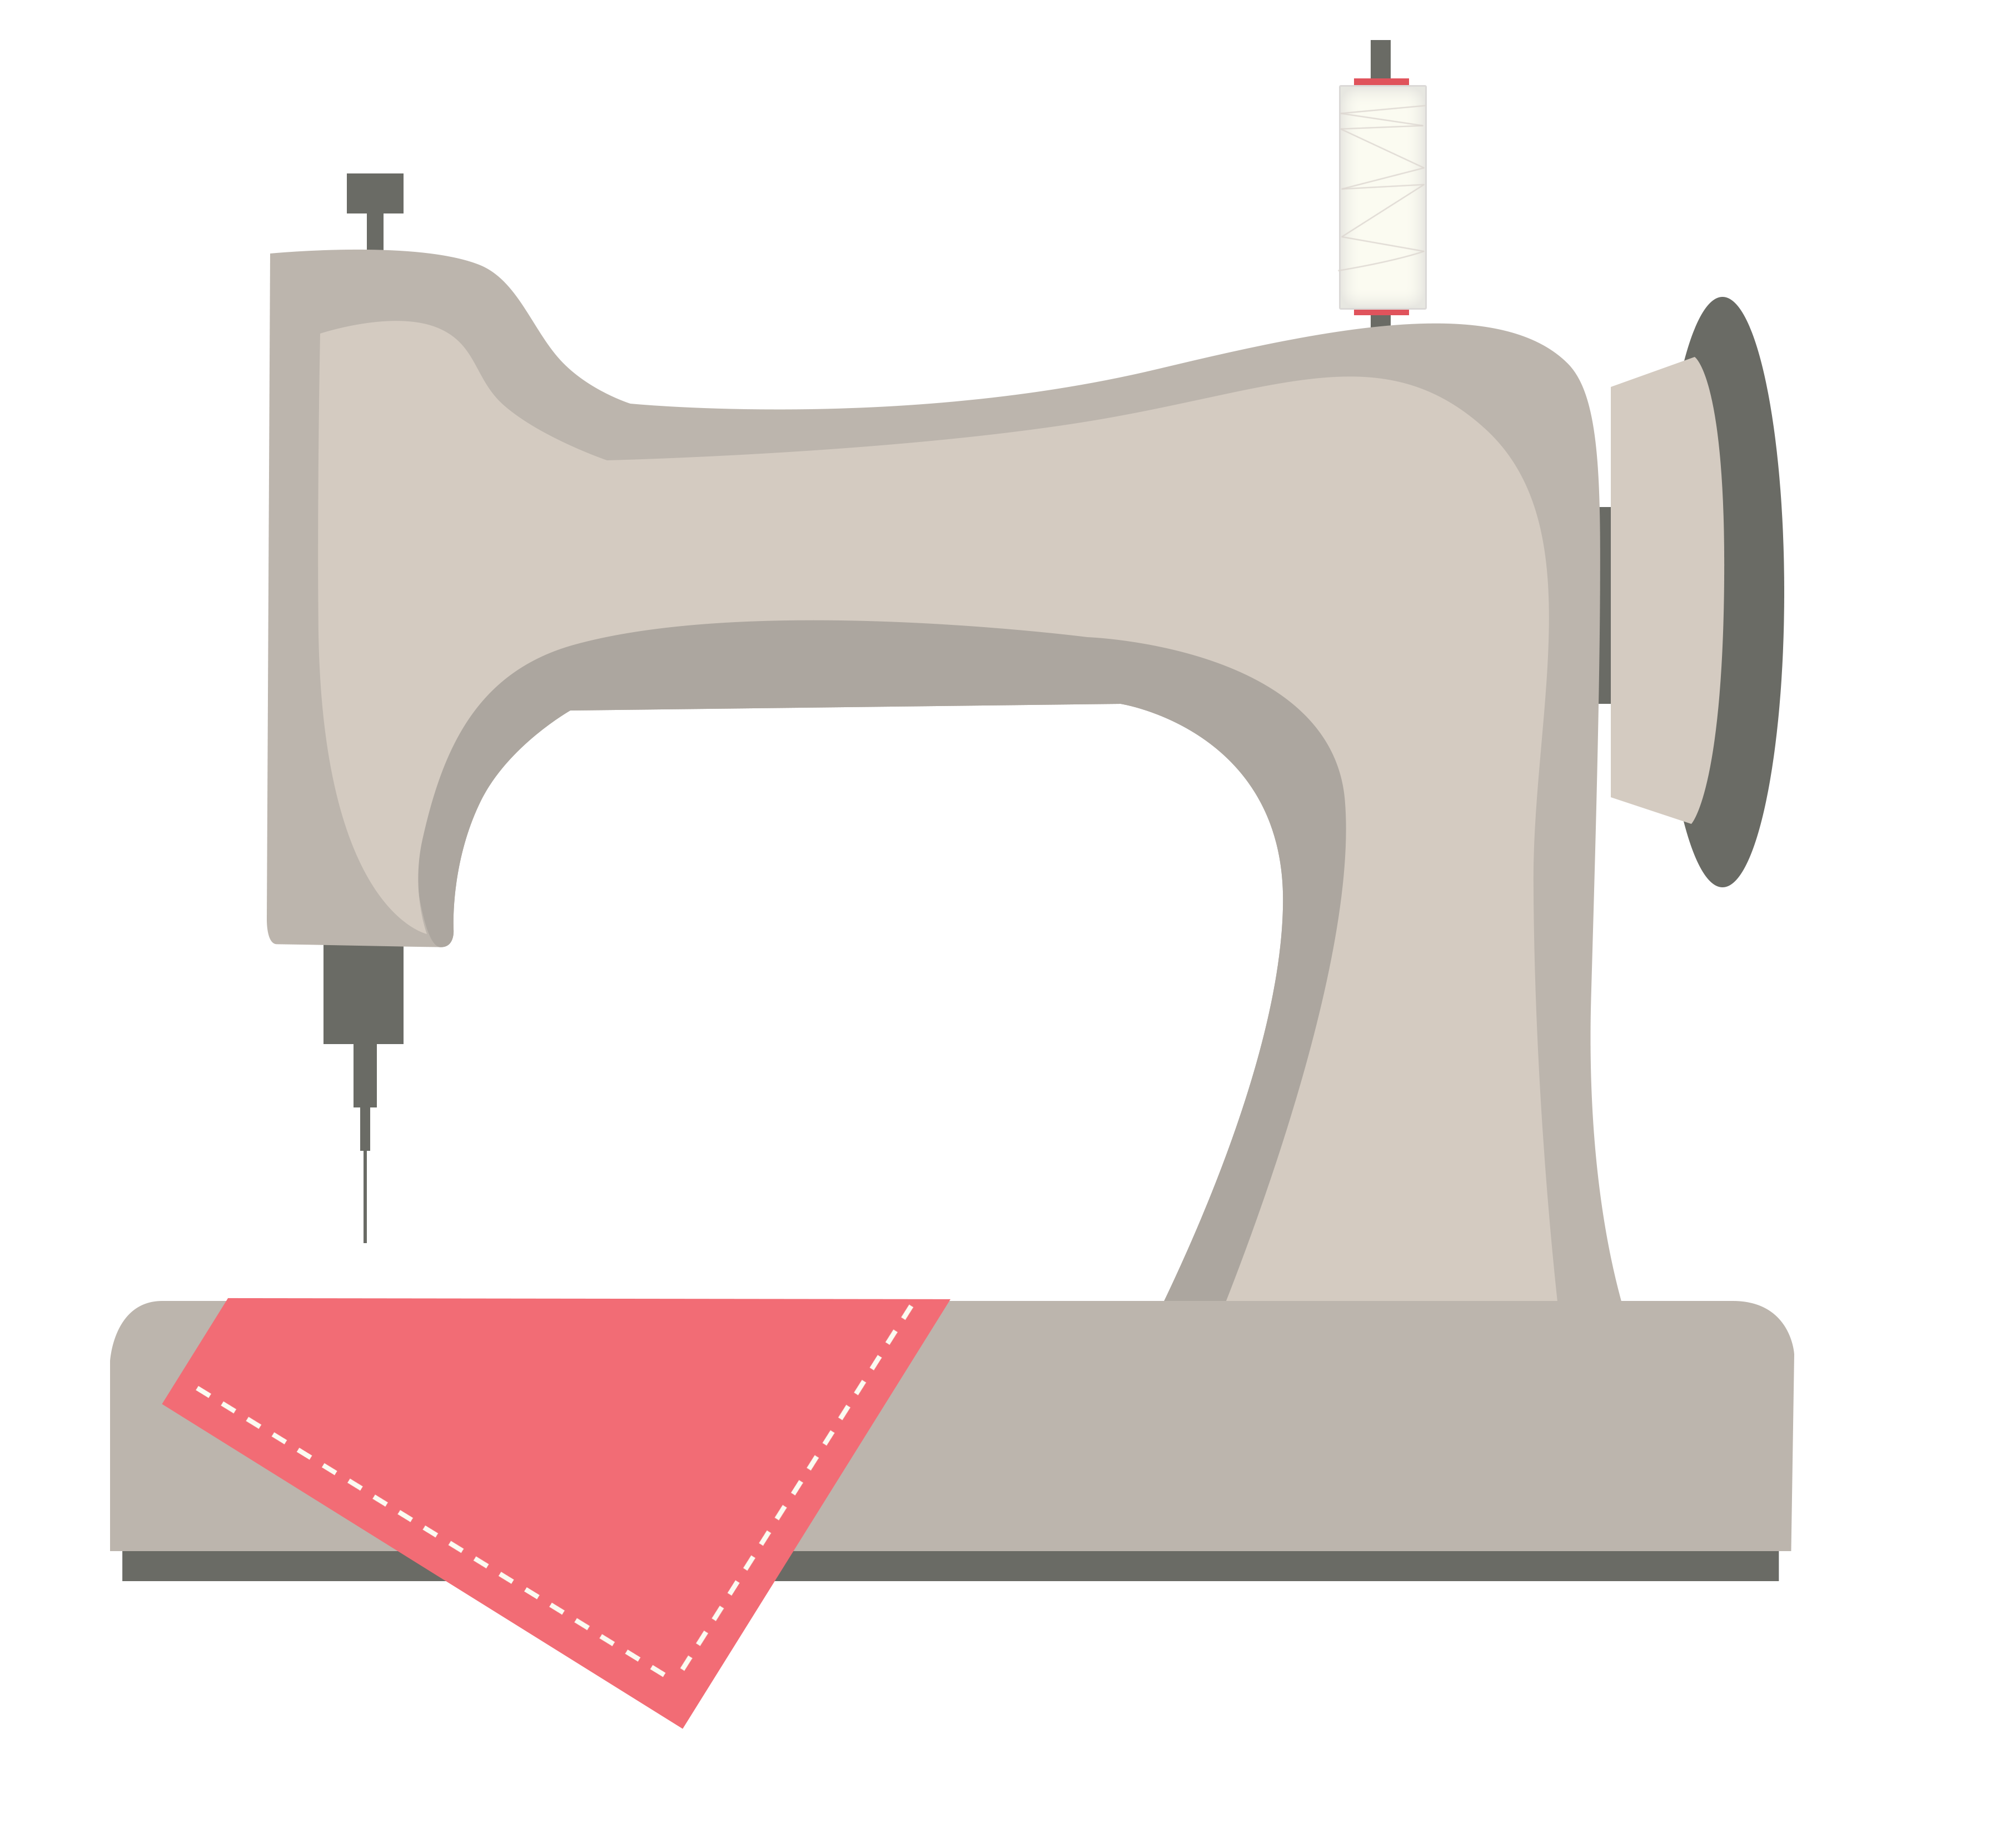 Fancy sewing stitches png. Homepage machines pro machine